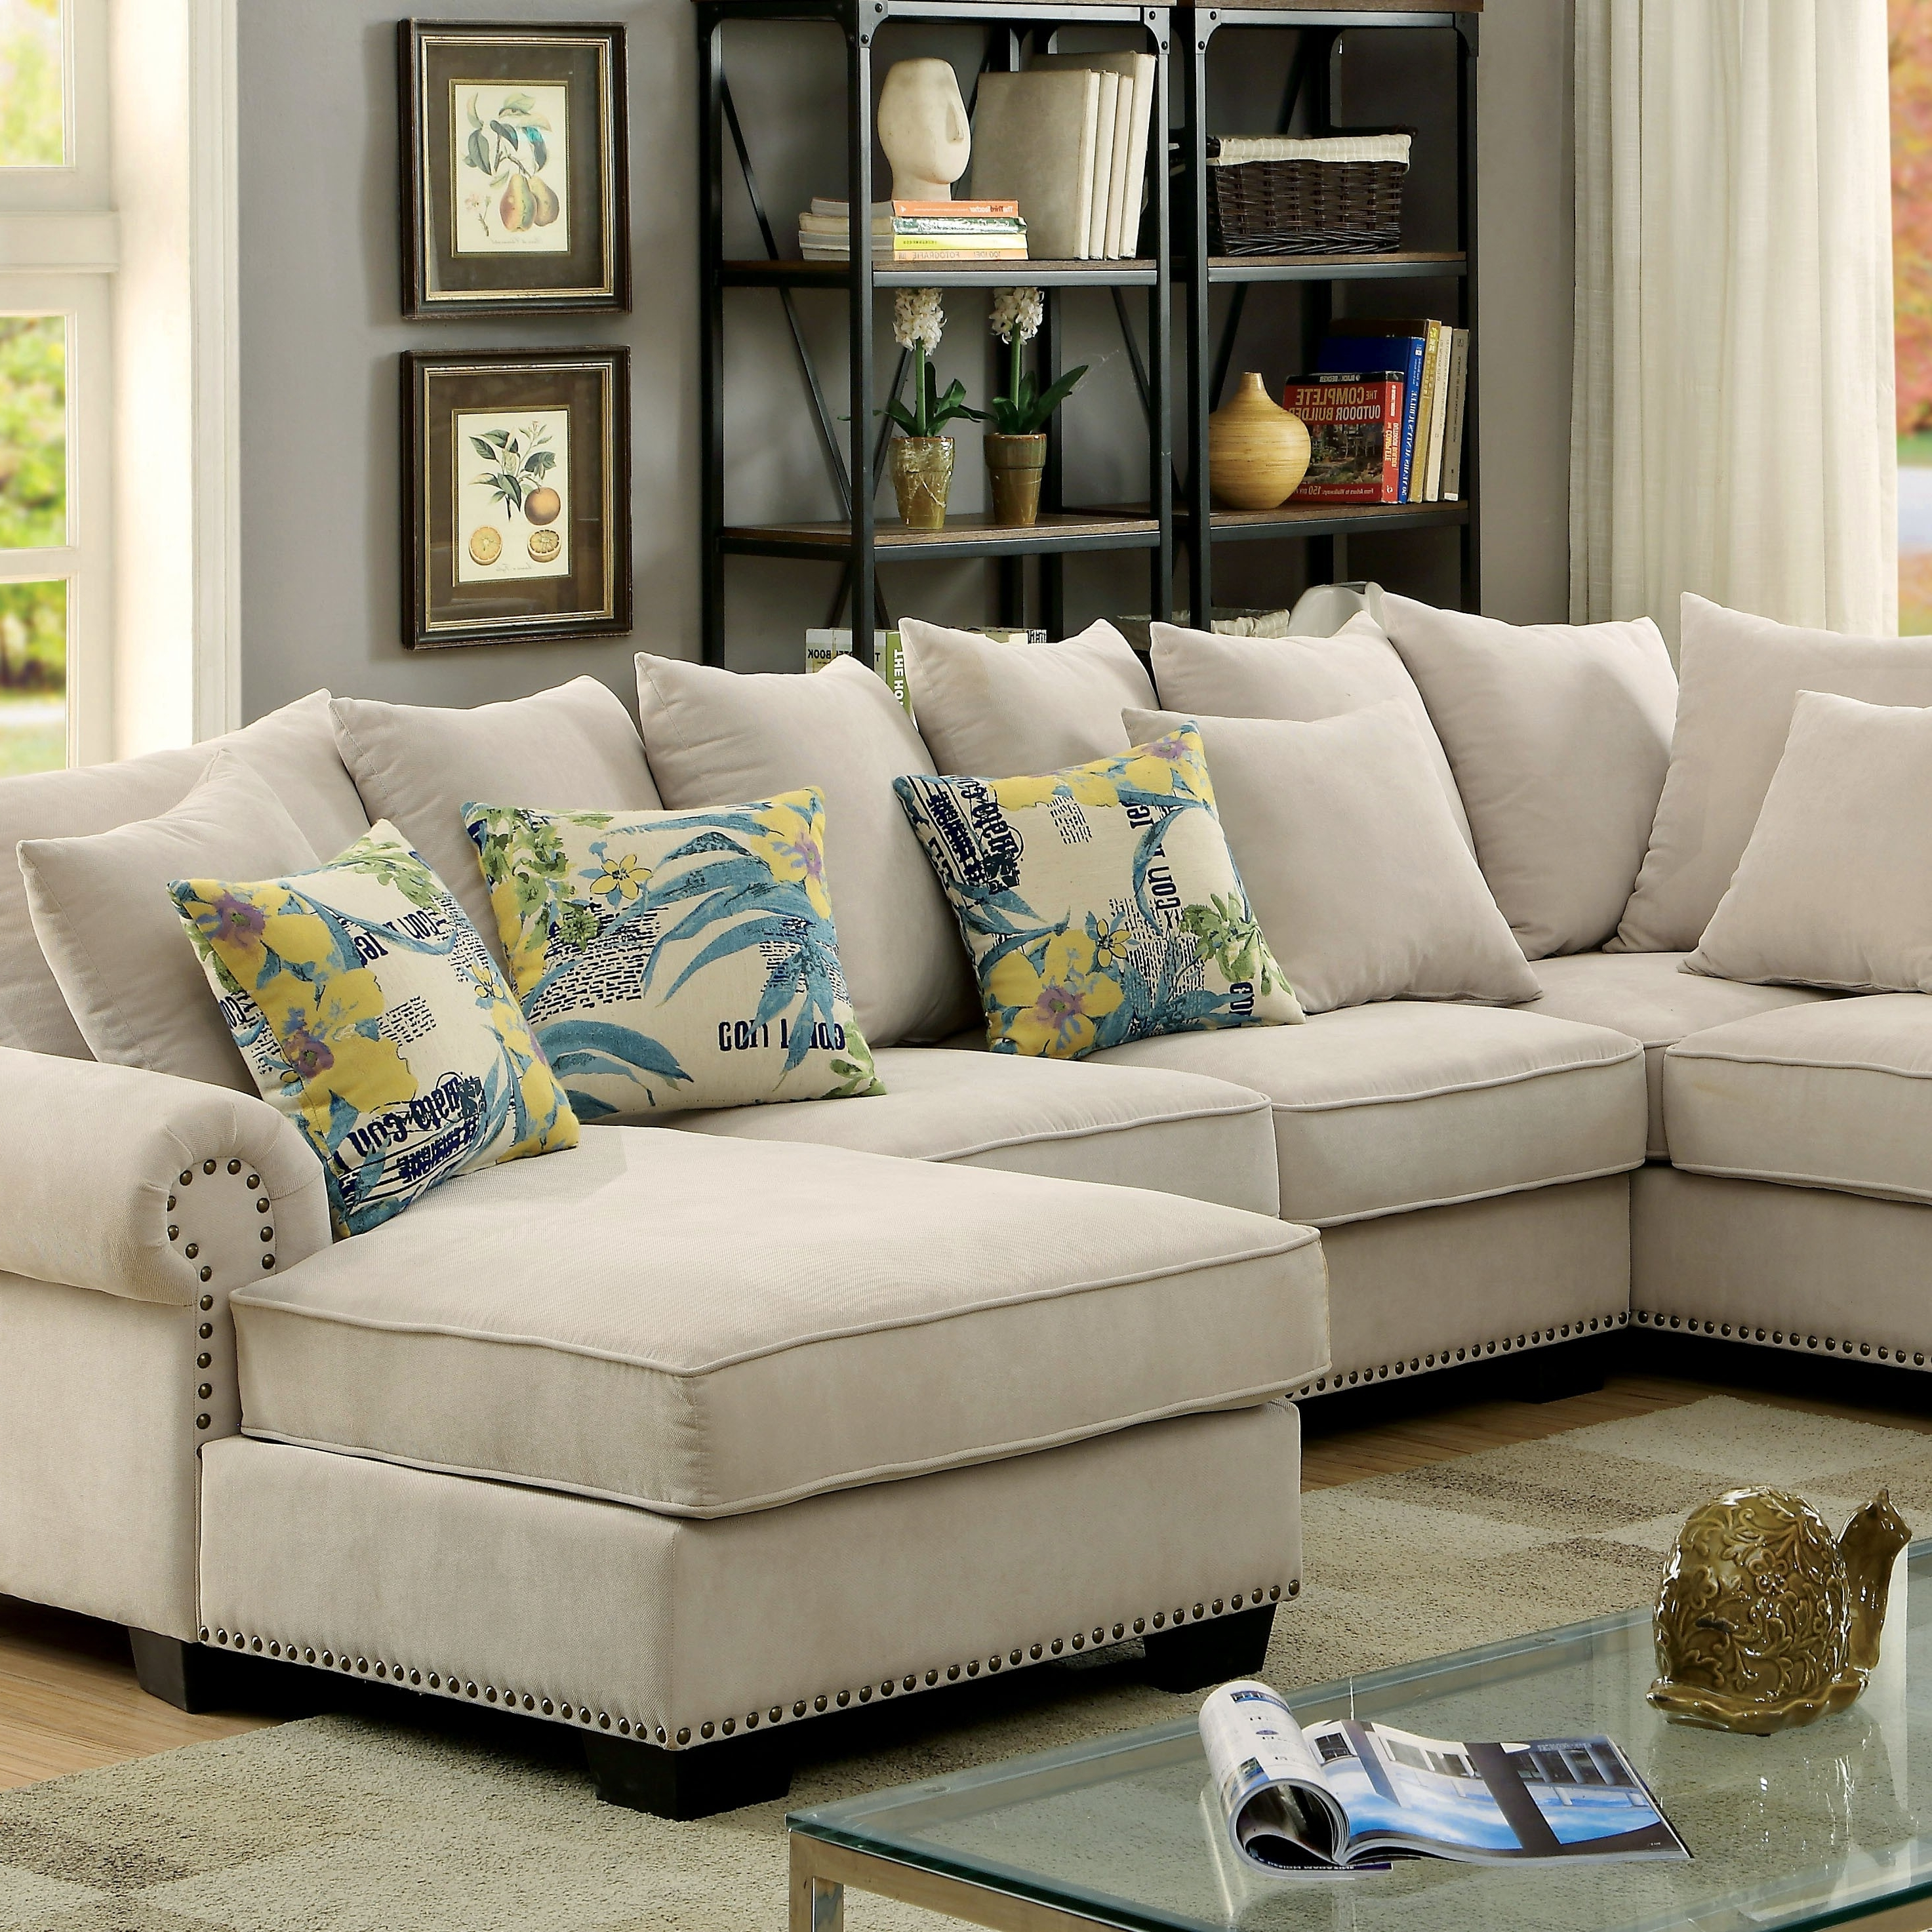 Best And Newest Skyler Transitional Ivory Fabric Sectional Sofa Couch – Shop For With Fabric Sectional Sofas (View 3 of 20)